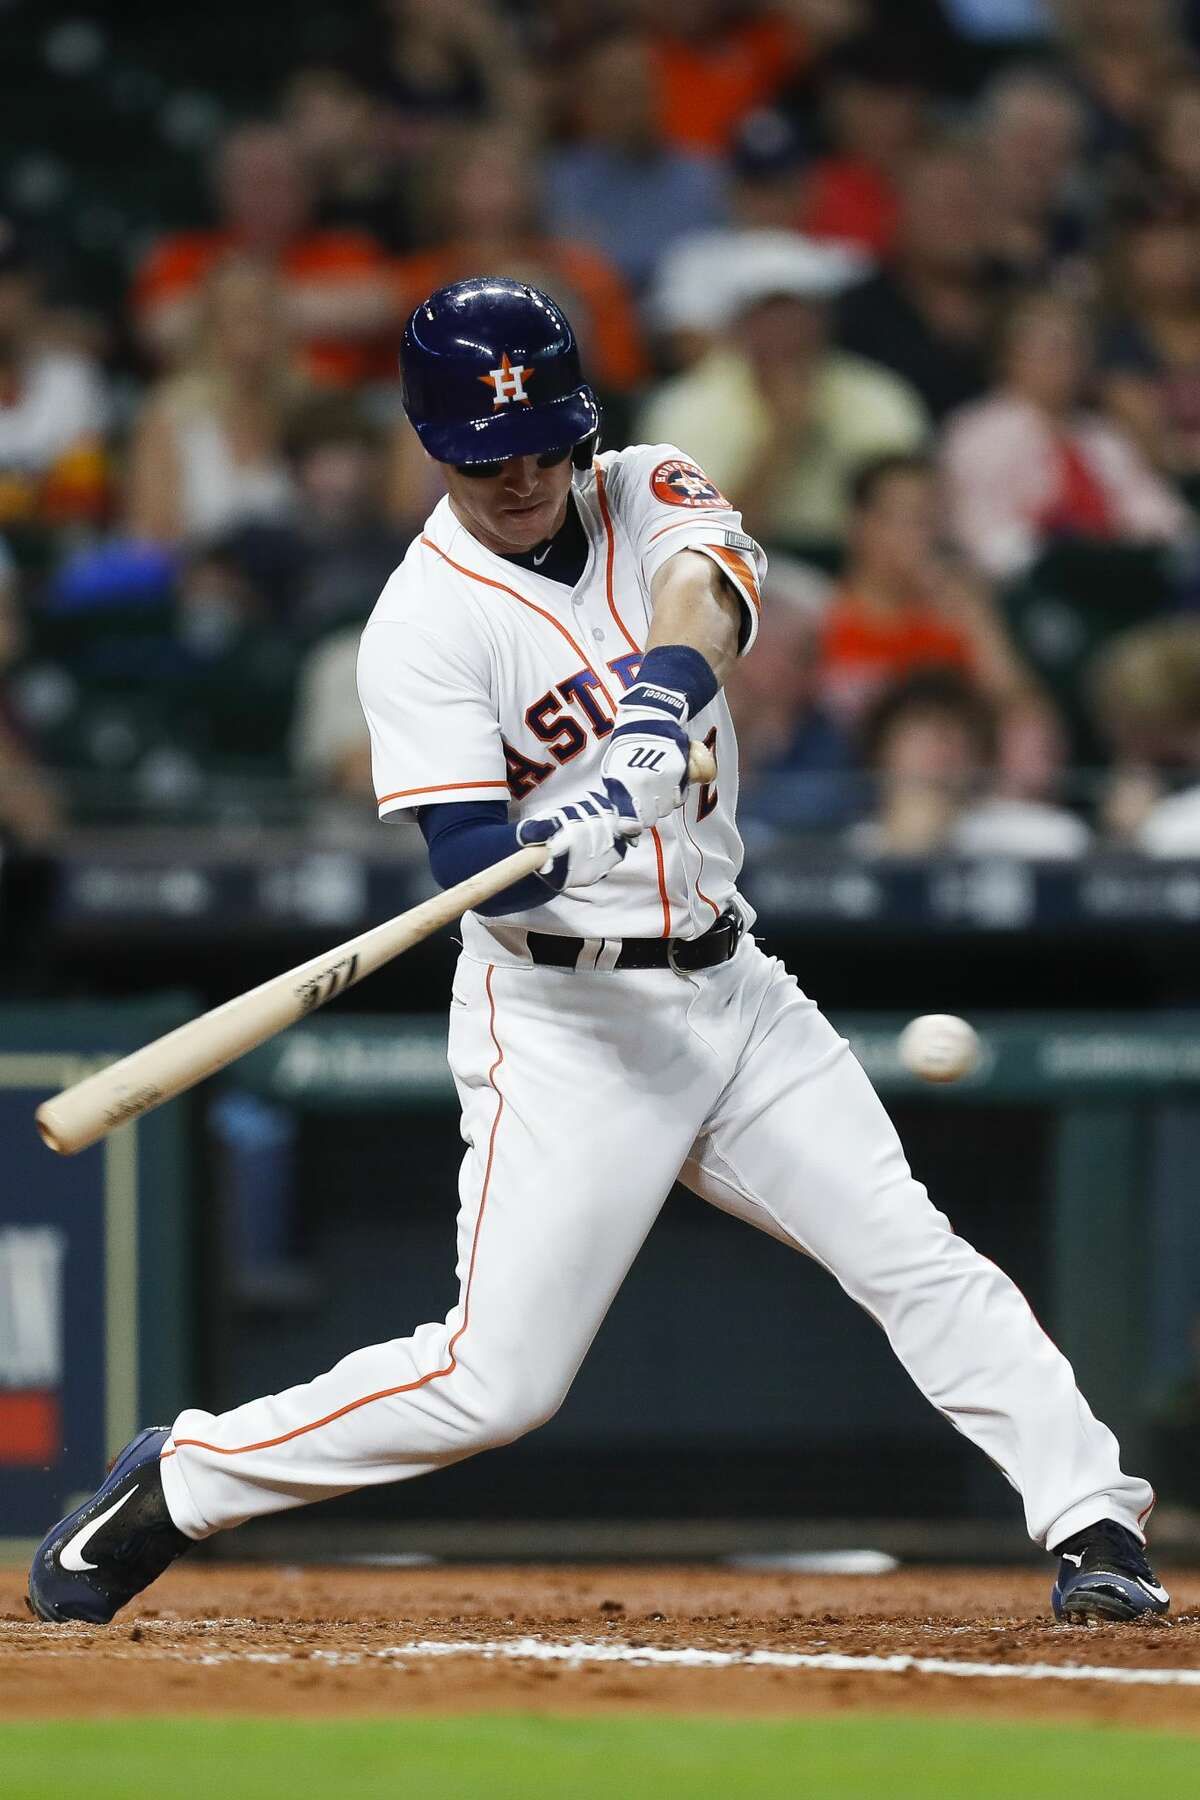 Houston Astros third baseman Alex Bregman (2) hits a single during the third inning as the Houston Astros take on the Oakland Athletics at Minute Maid Park Saturday, April 29, 2017 in Houston. ( Michael Ciaglo / Houston Chronicle)